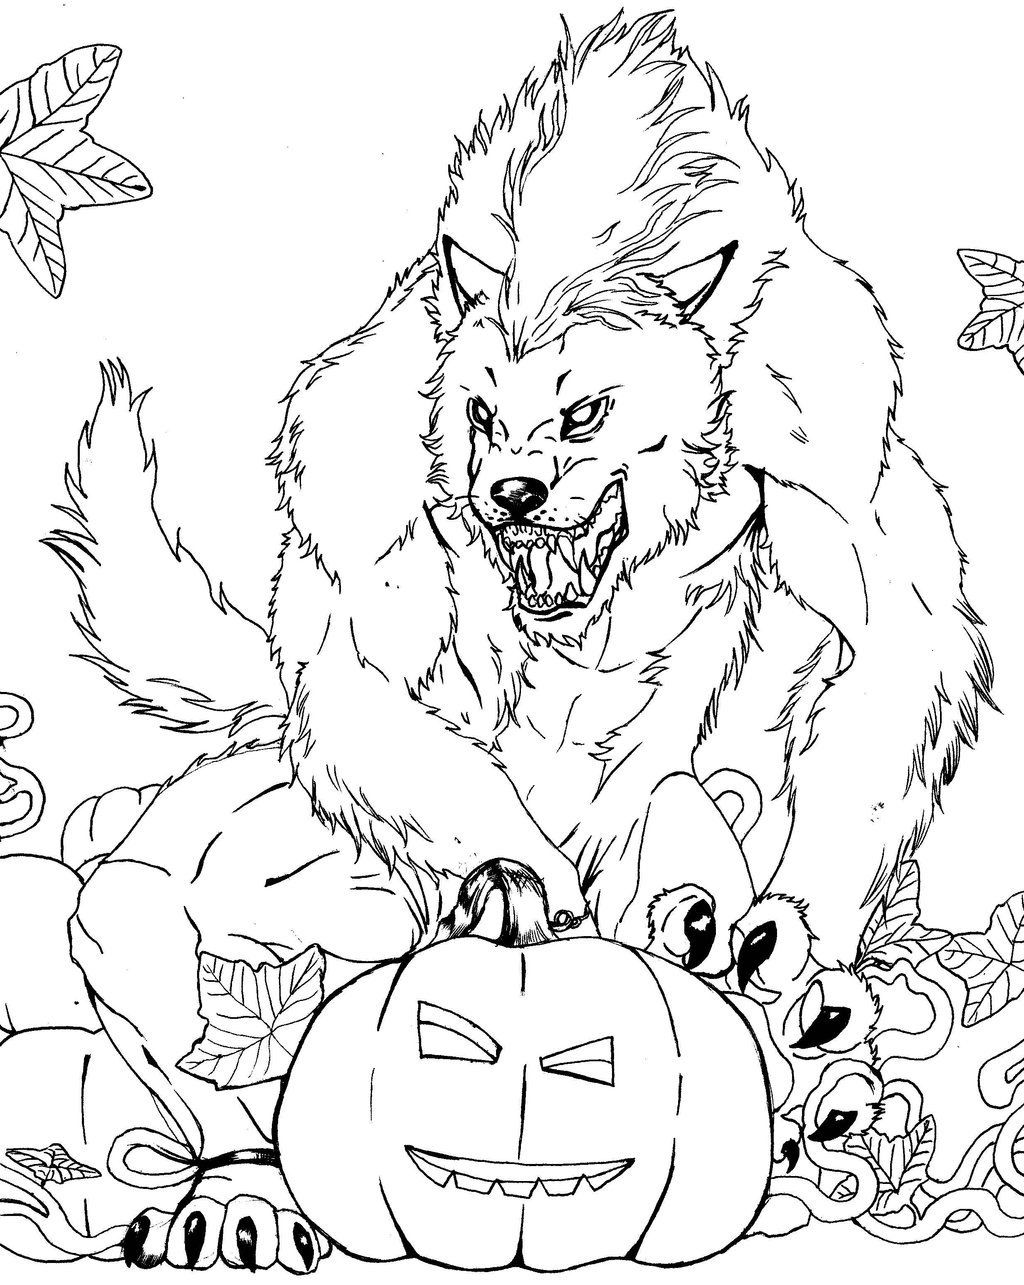 Werewolf Coloring Pages Best Coloring Pages For Kids Halloween Coloring Pages Monster Coloring Pages Scary Halloween Coloring Pages